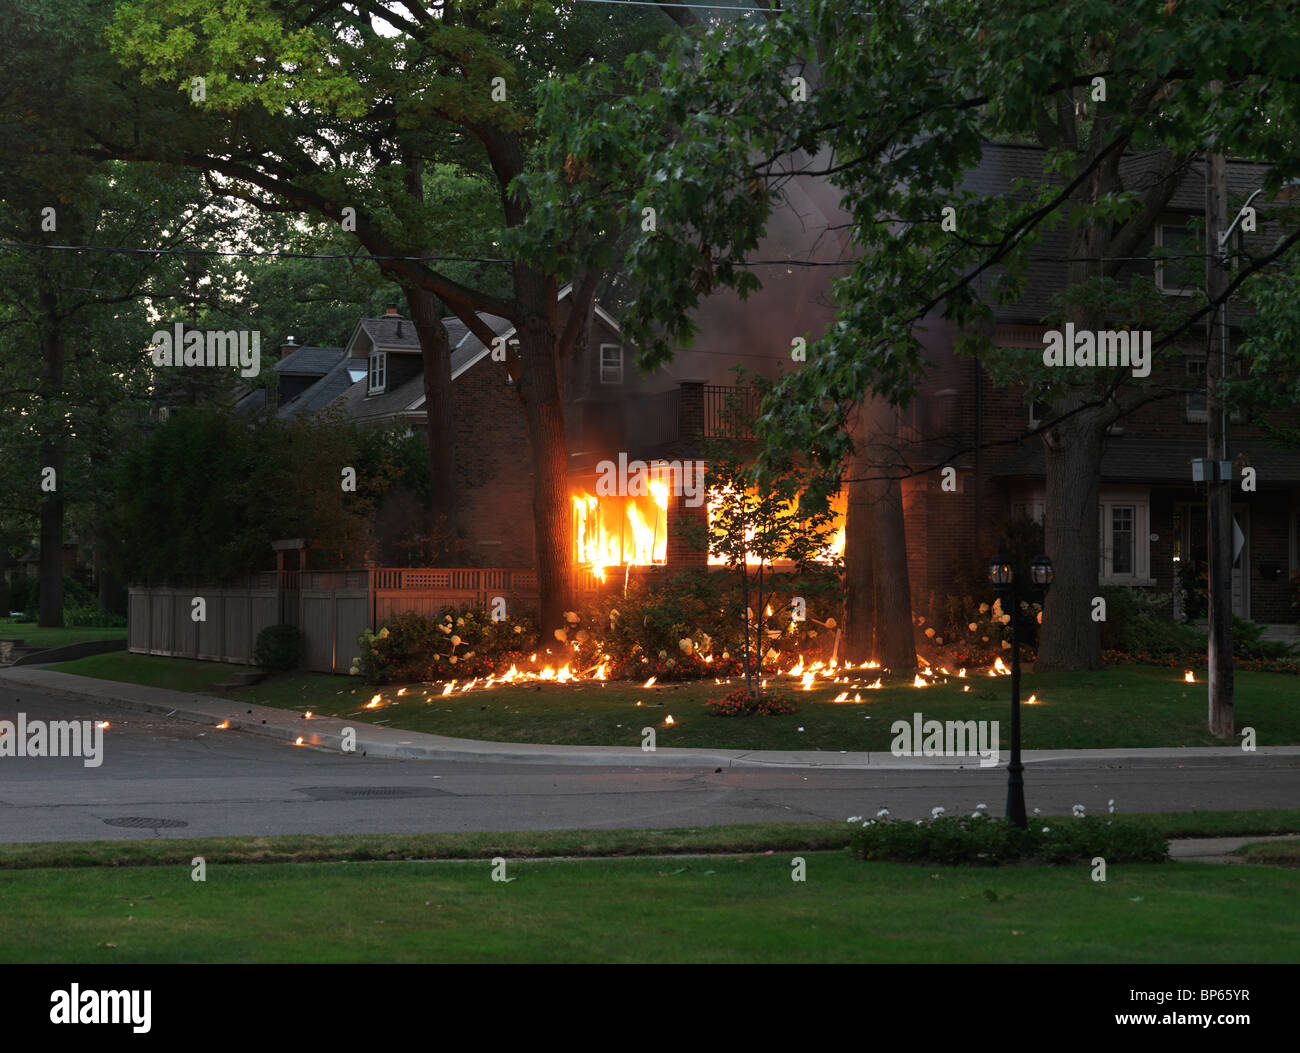 Residential house burning after an explosion - Stock Image